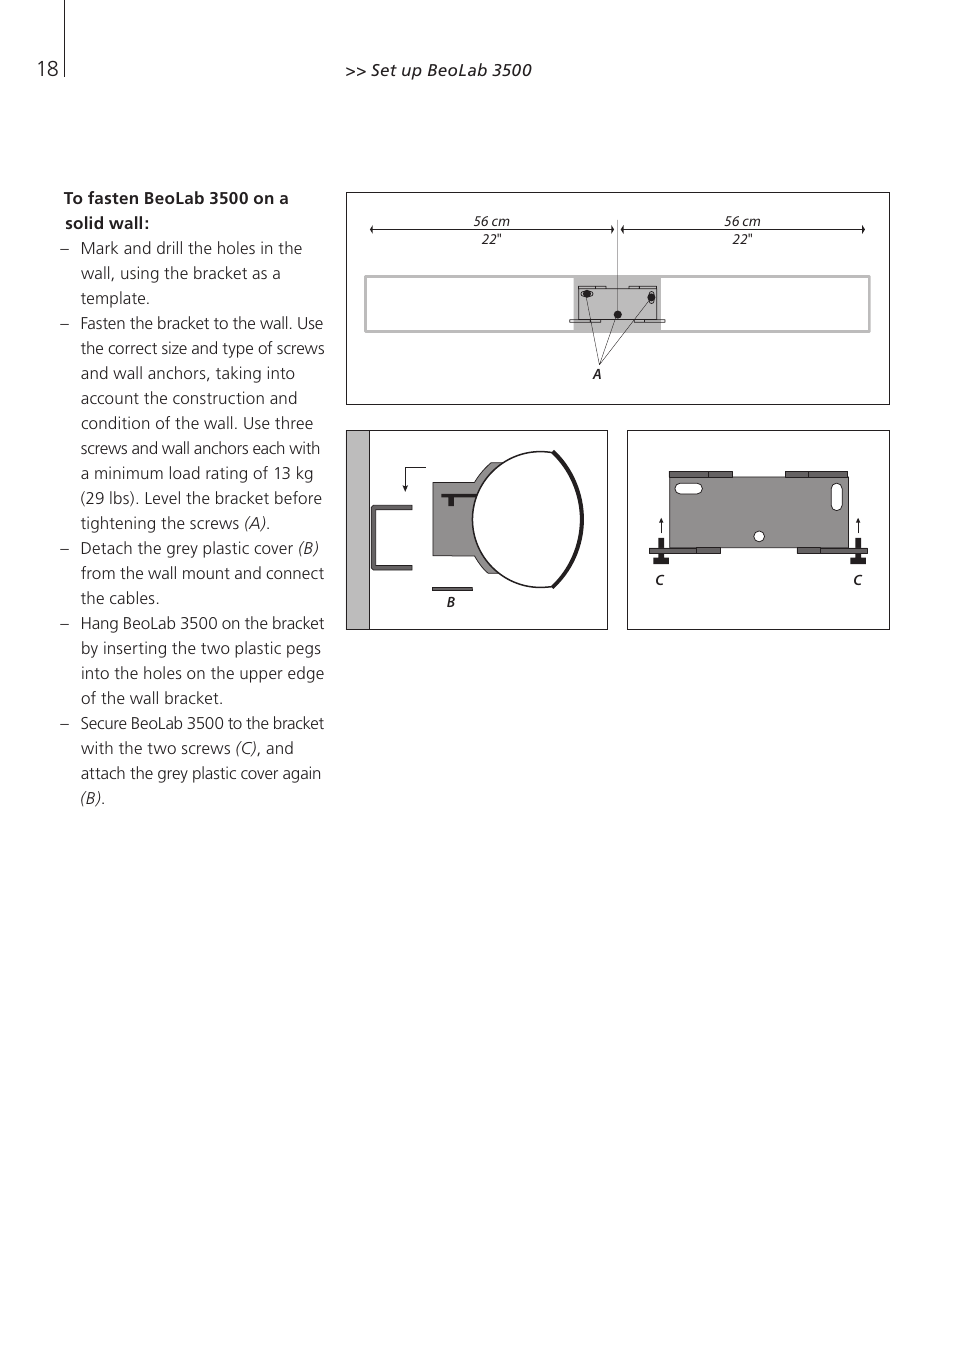 To fasten beolab 3500 on a solid wall bang olufsen beolab 3500 to fasten beolab 3500 on a solid wall bang olufsen beolab 3500 user guide user manual page 18 28 fandeluxe Choice Image